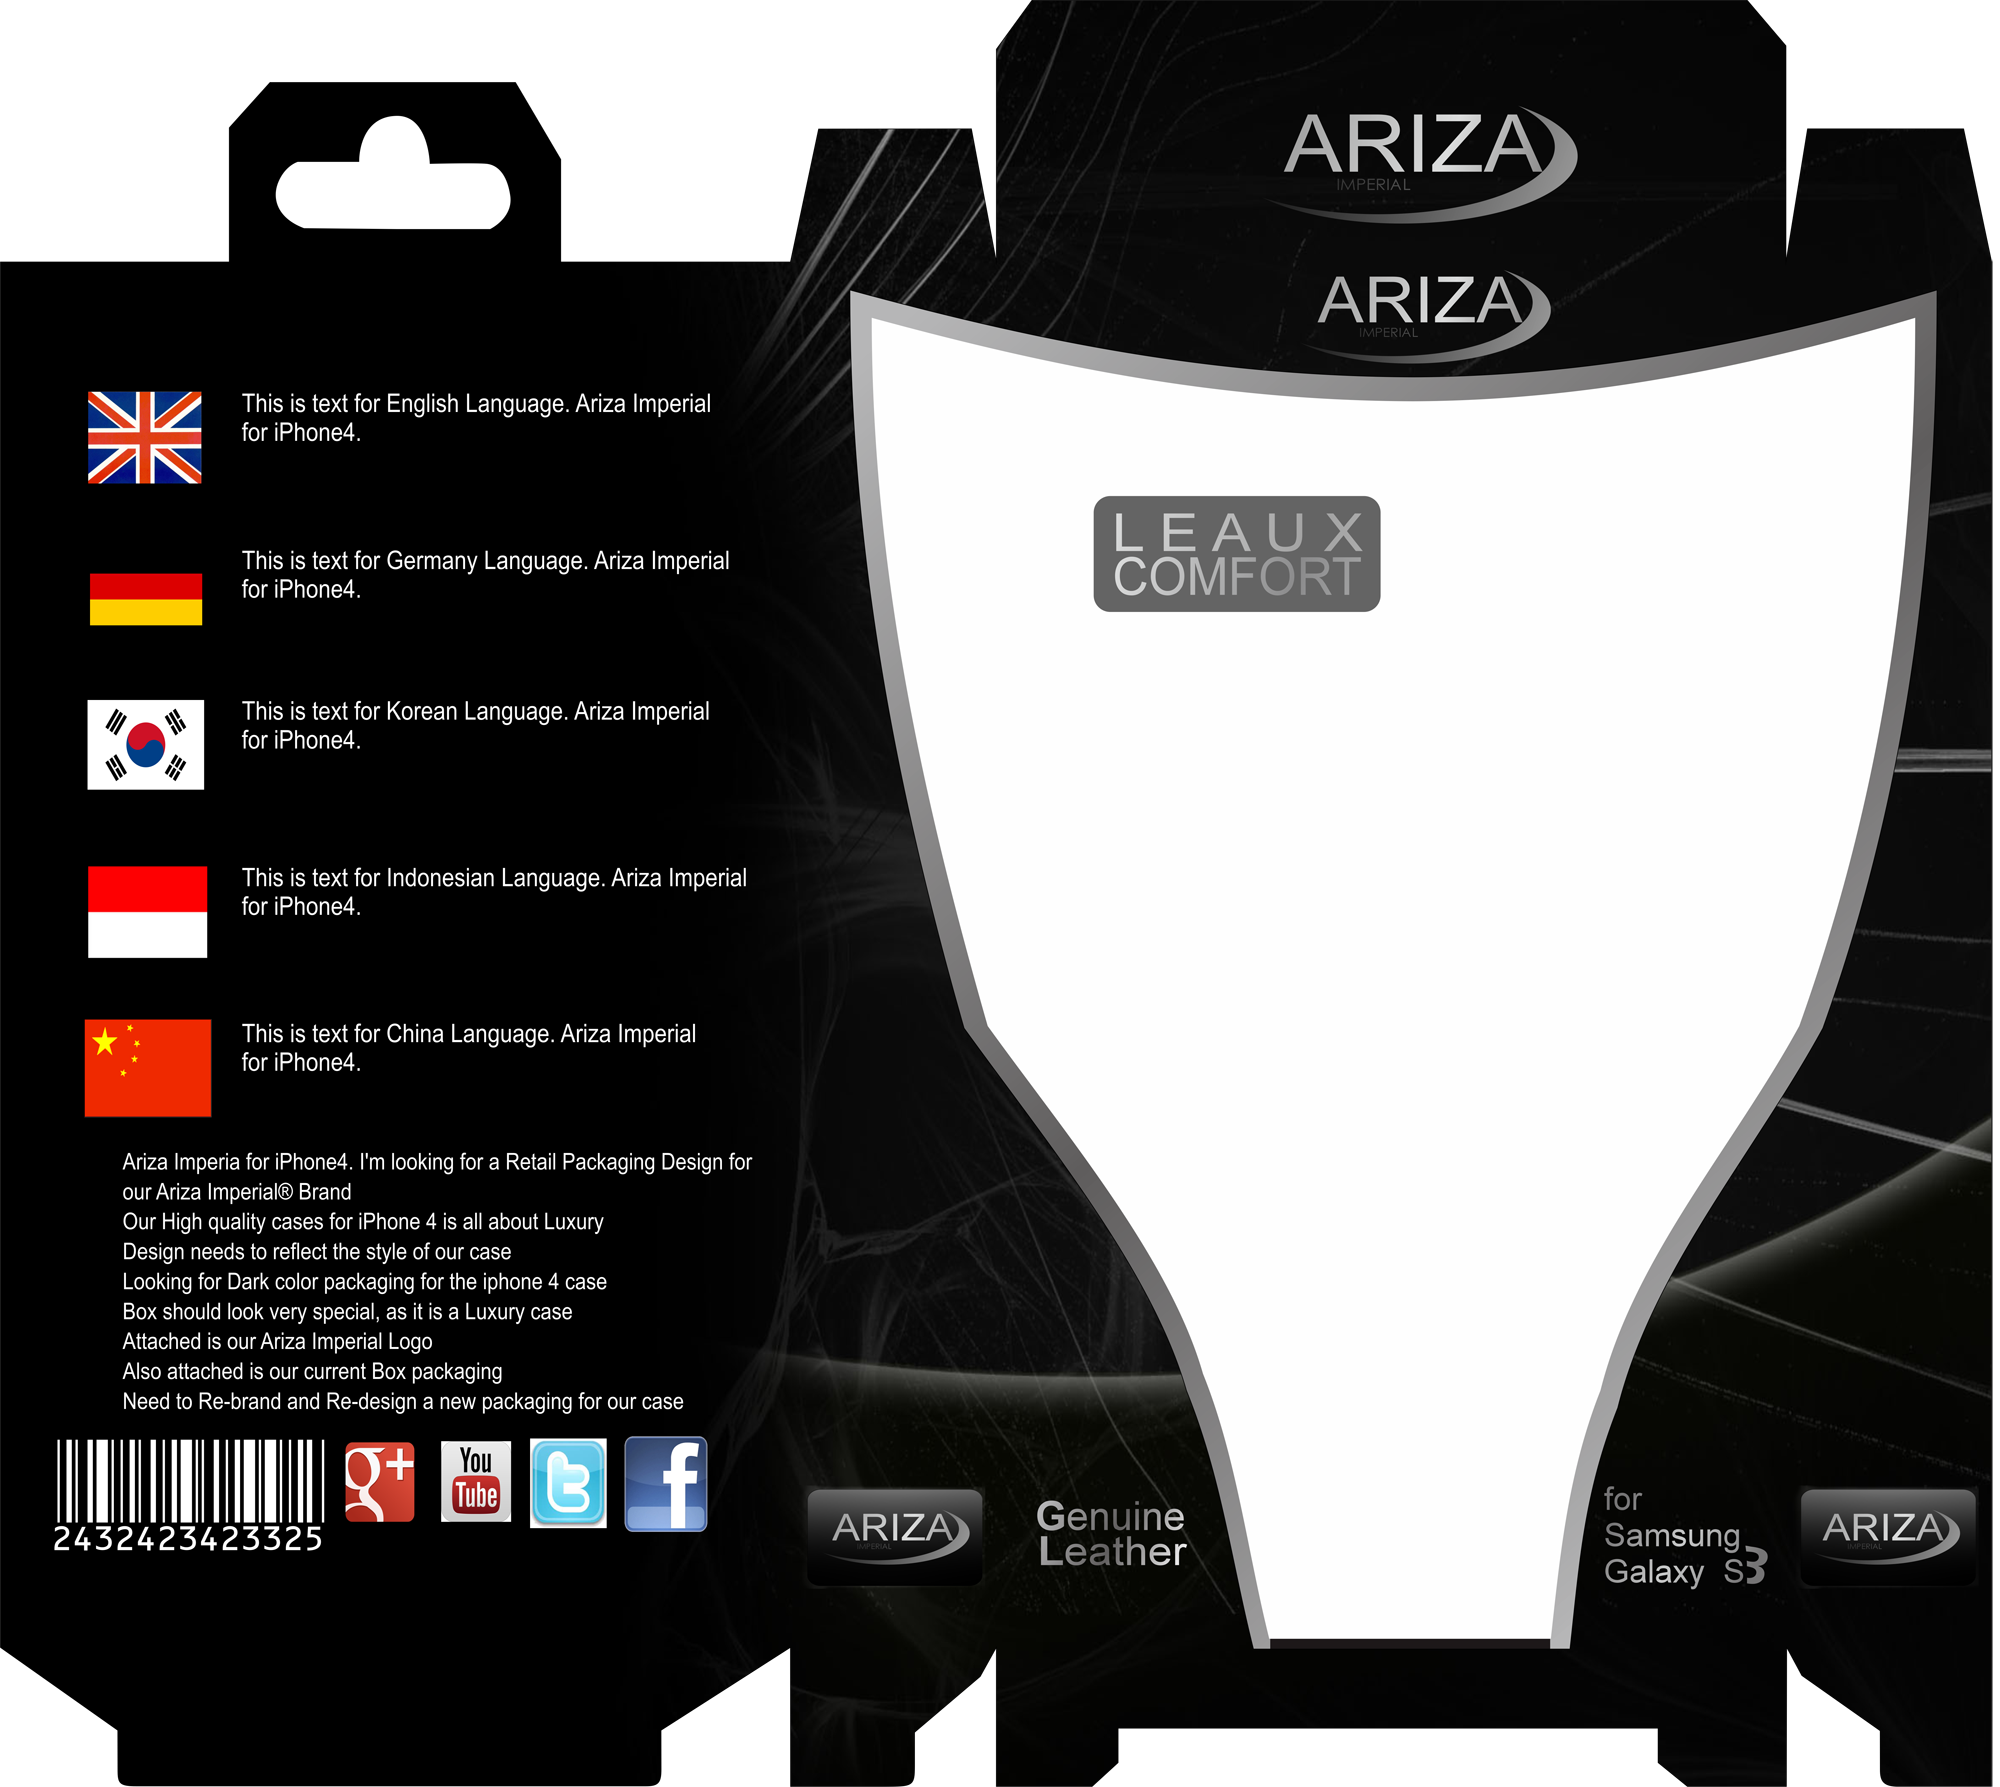 Ariza Imperial needs a Product Packaging